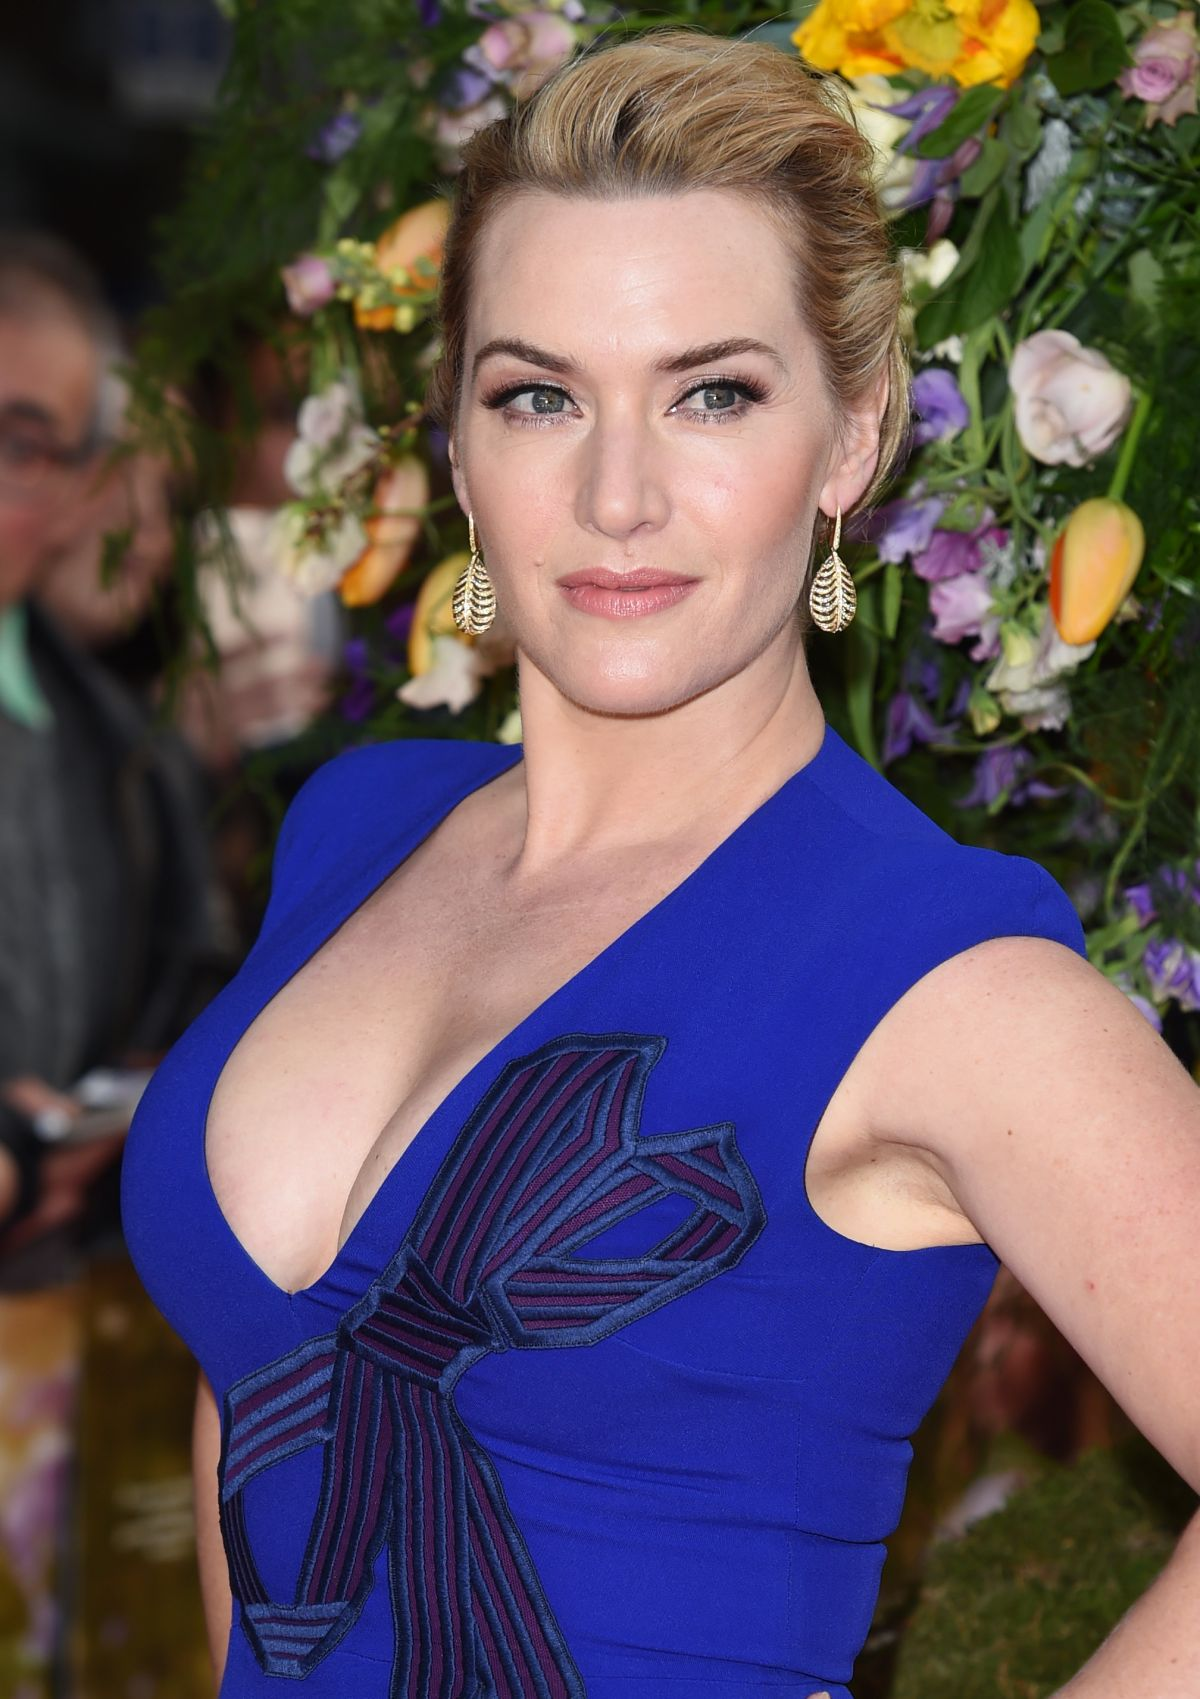 KATE WINSLET At A Little Chaos Premiere In London HawtCelebs